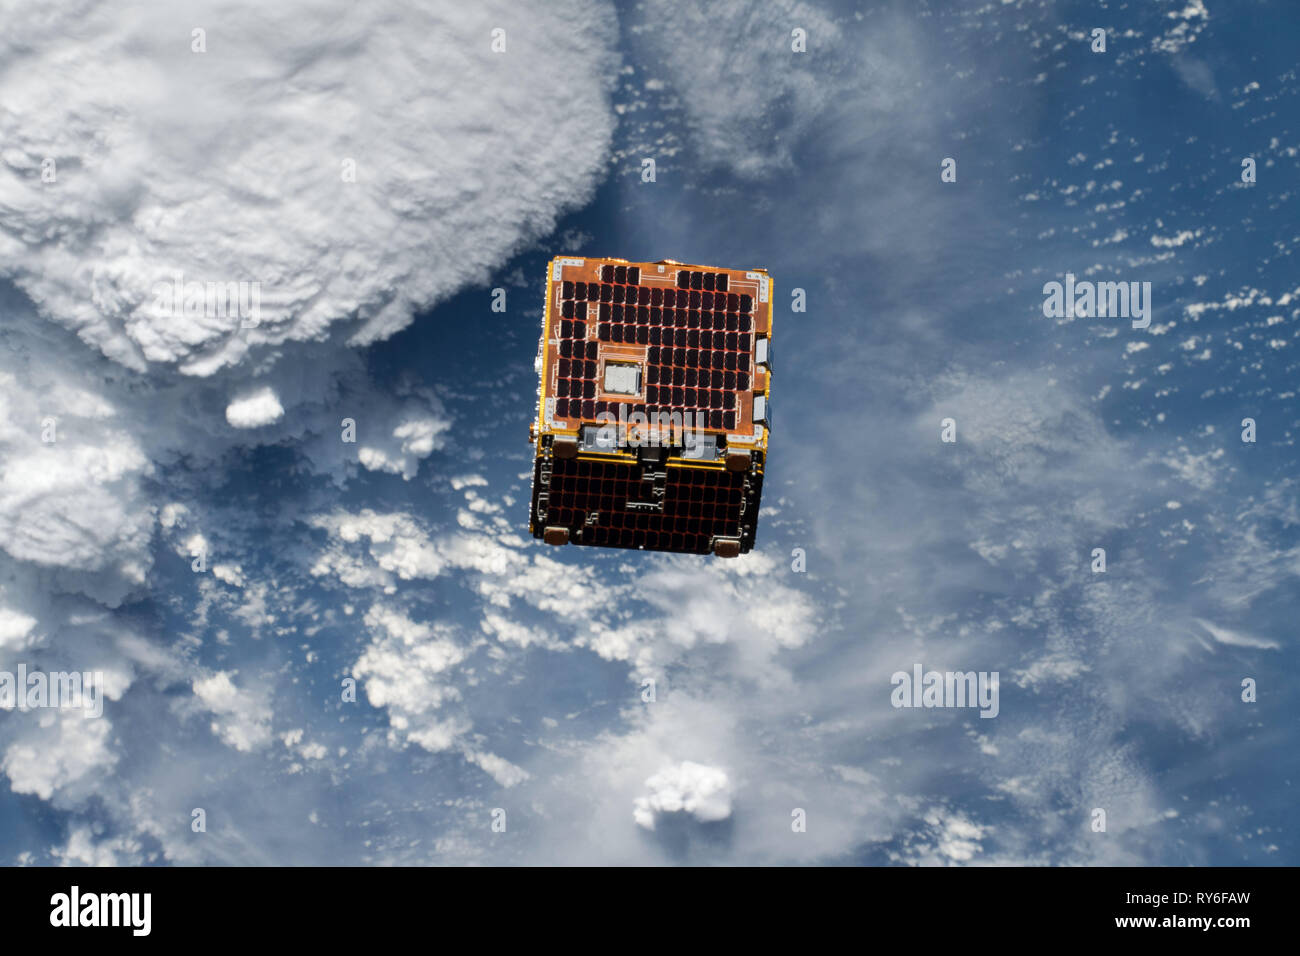 NanoRacks-Remove Debris satellite was deployed on June 20, 2018,​ from the International Space Station. Stock Photo